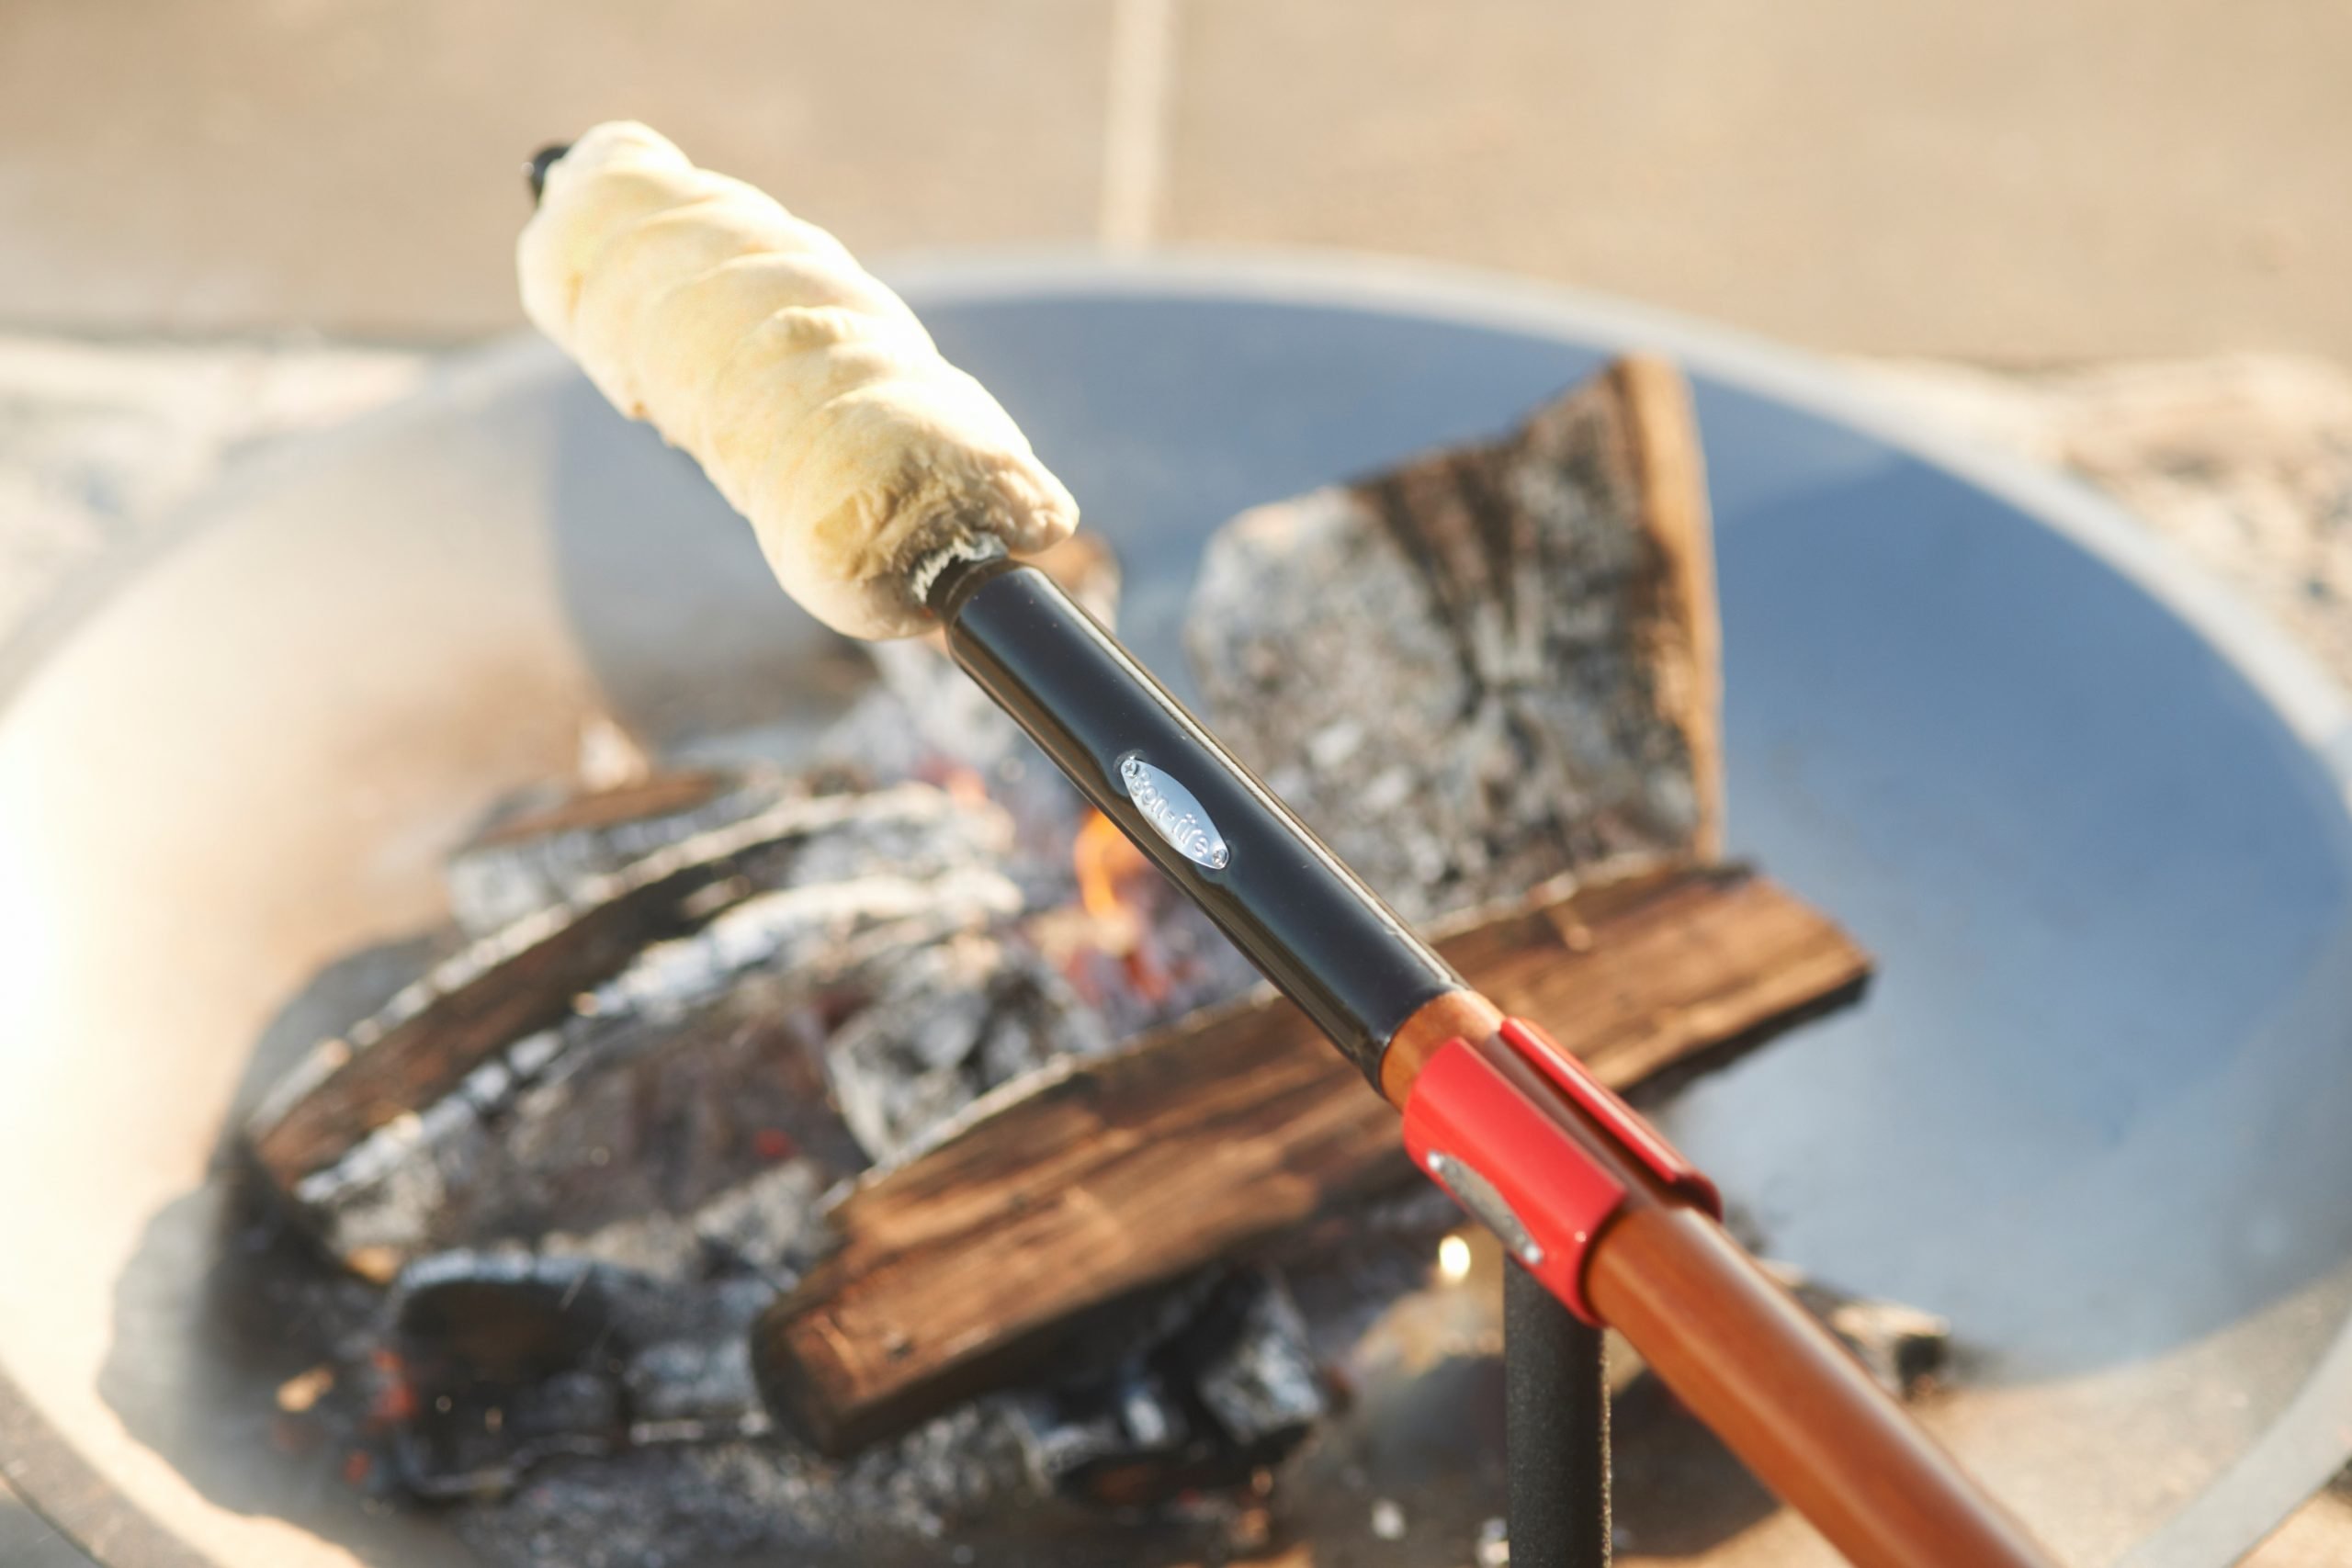 Bon-fire Brazier in steel and Twist bread stick plus matching Holder for the Twist bread stick.